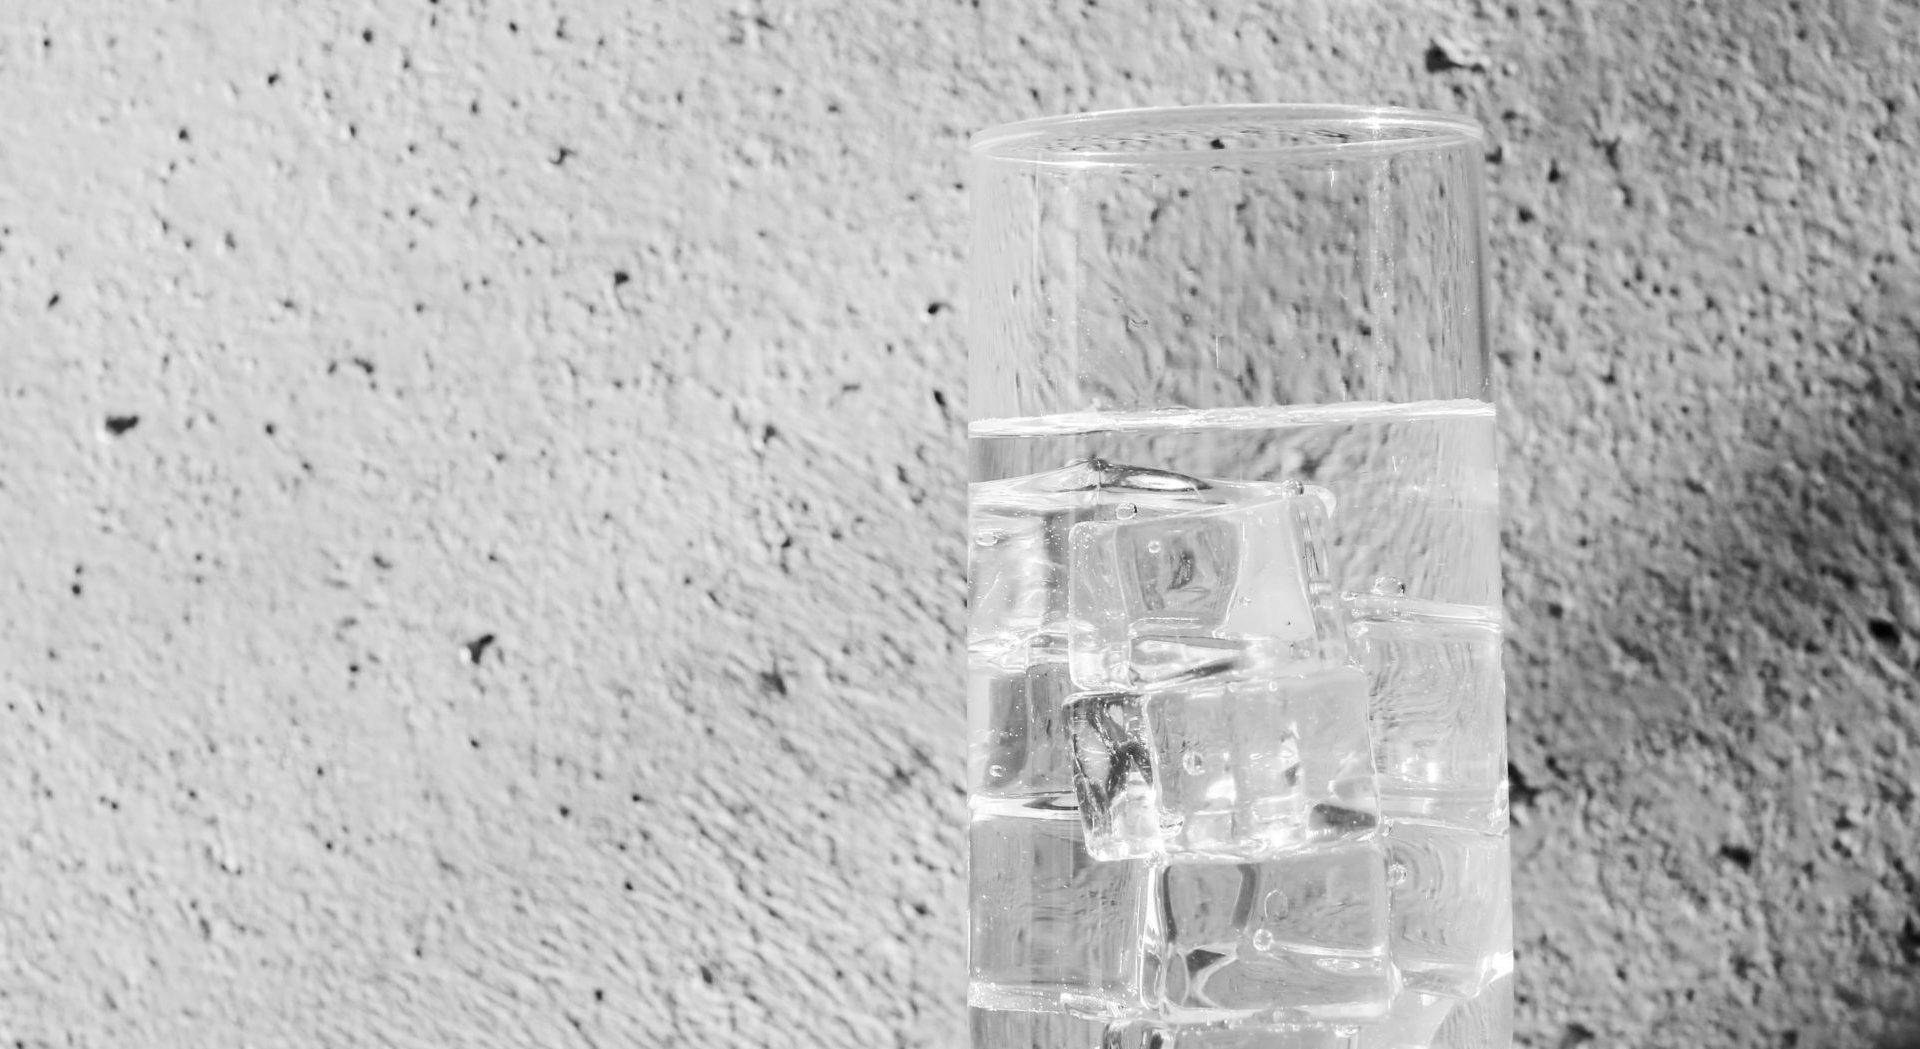 grayscale photo of a glass of water